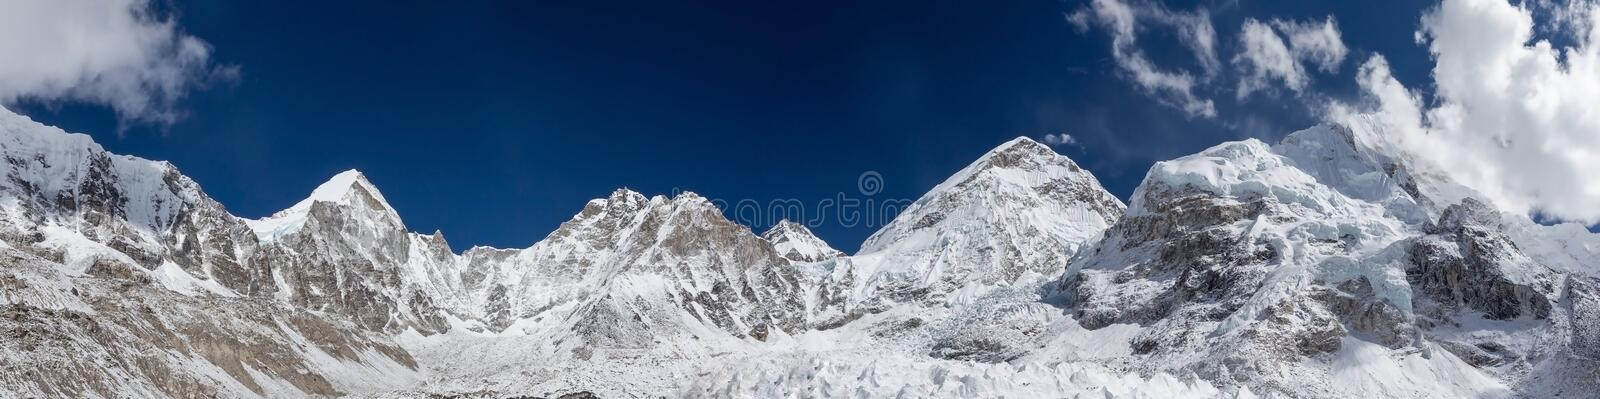 Mount Everest-Panorama lizenzfreie stockfotos